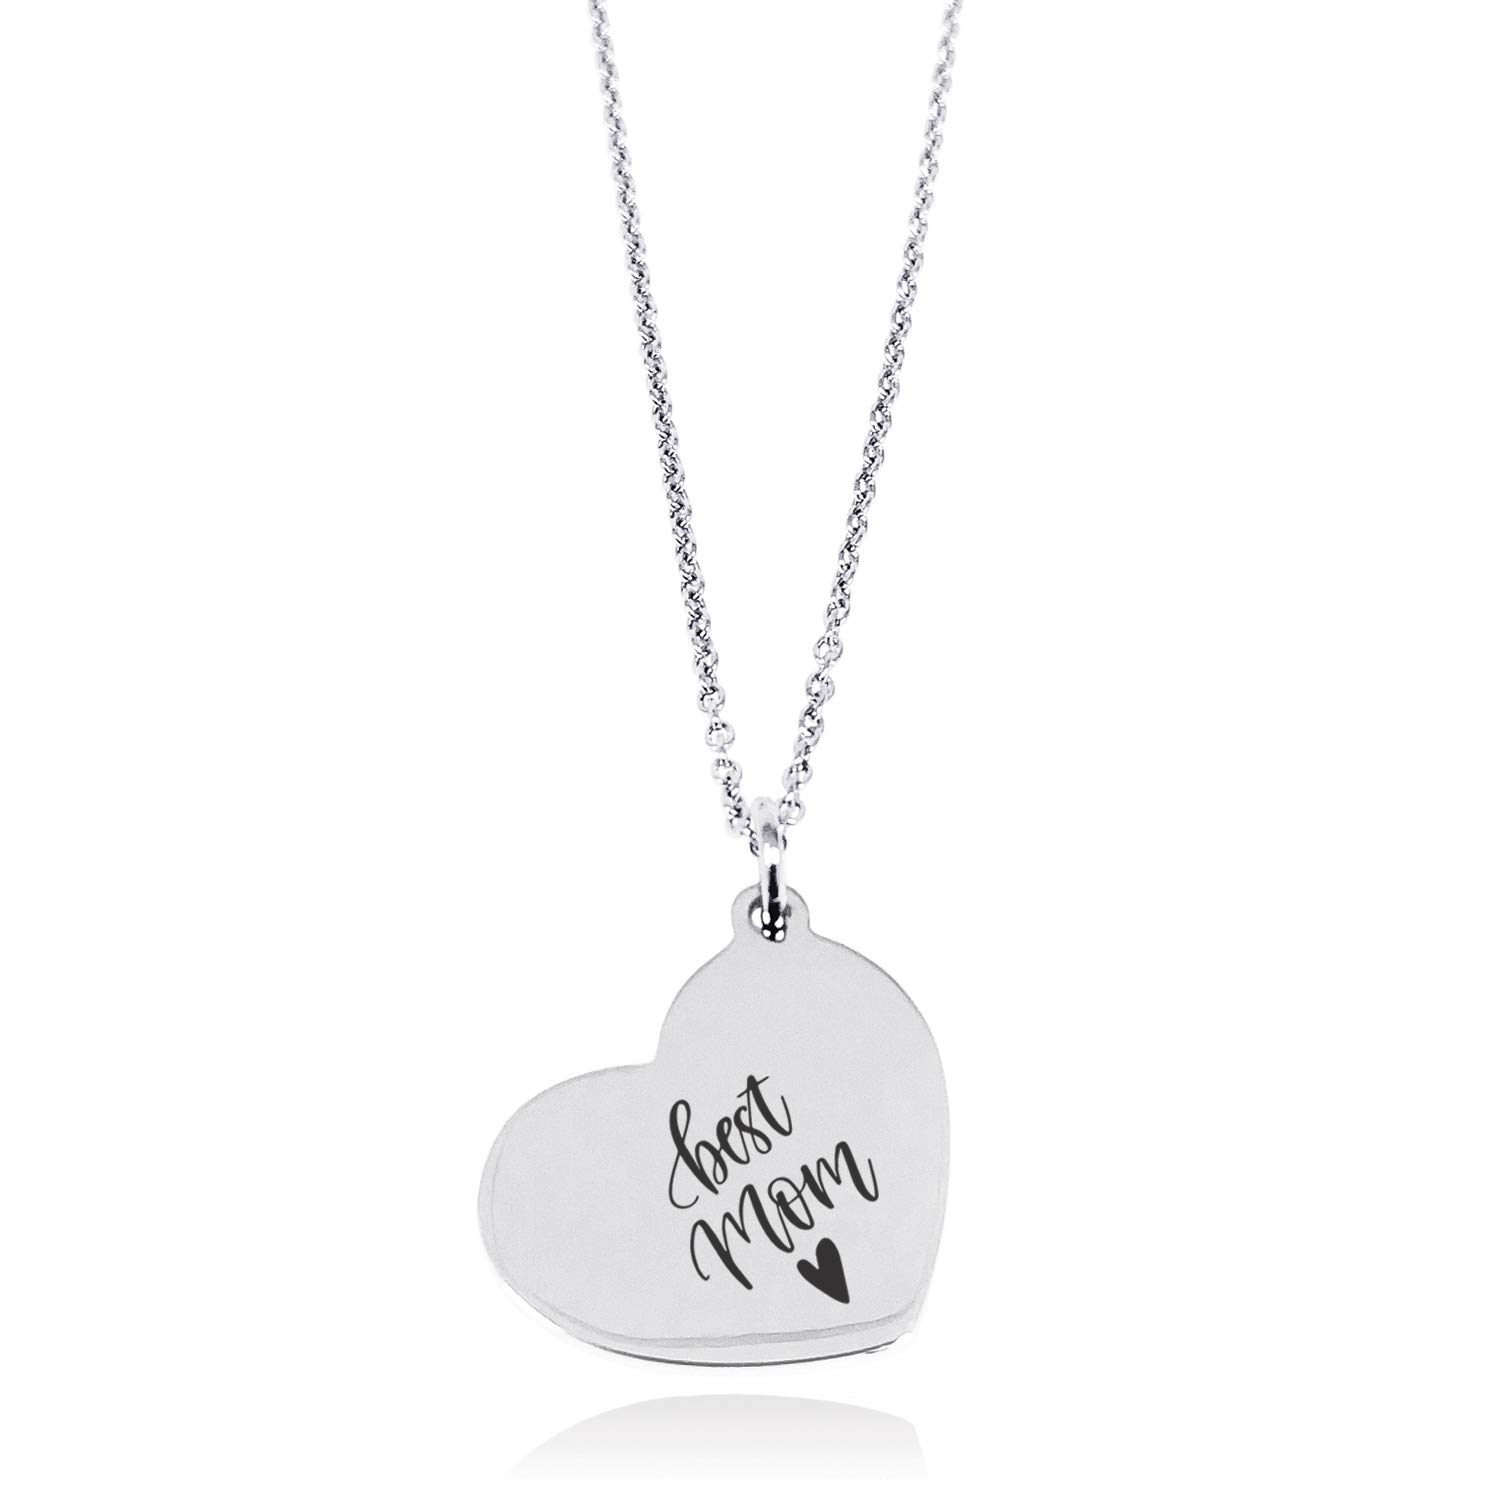 Tioneer Stainless Steel Best Mom /& Heart Floating Heart Tag Charm Pendant Necklace